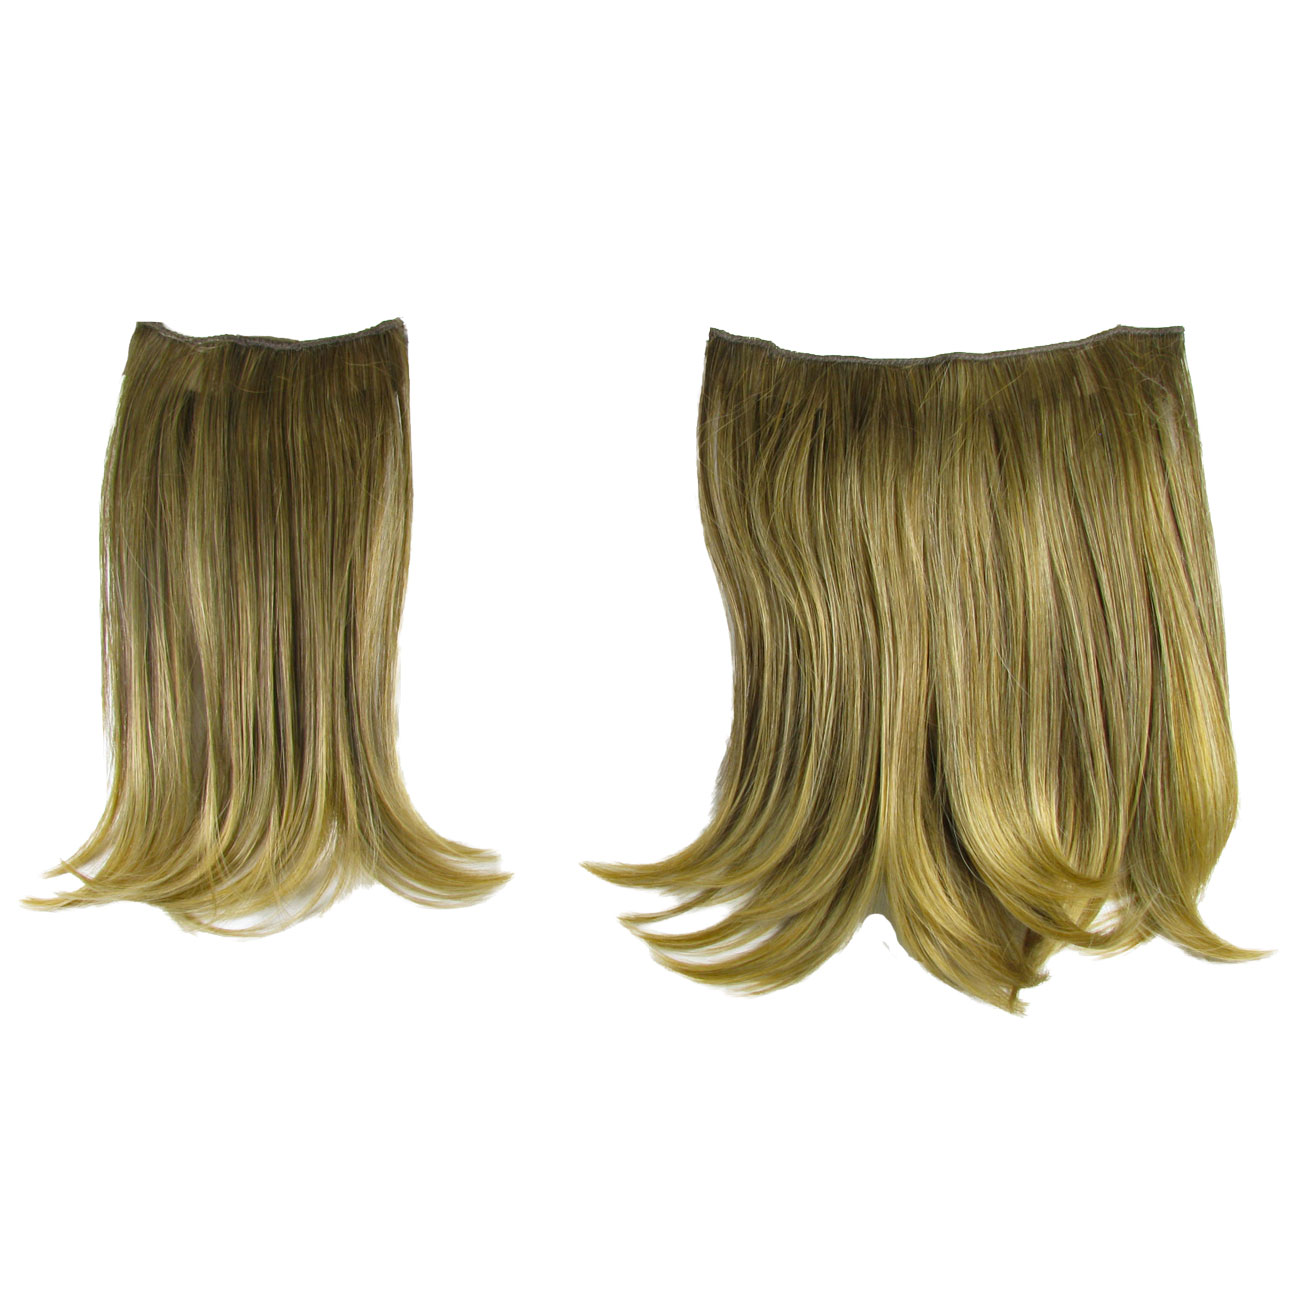 Hair Extensions Clip In 2 Piece Ken Paves Hairdo Dark Blonde Fashion 16